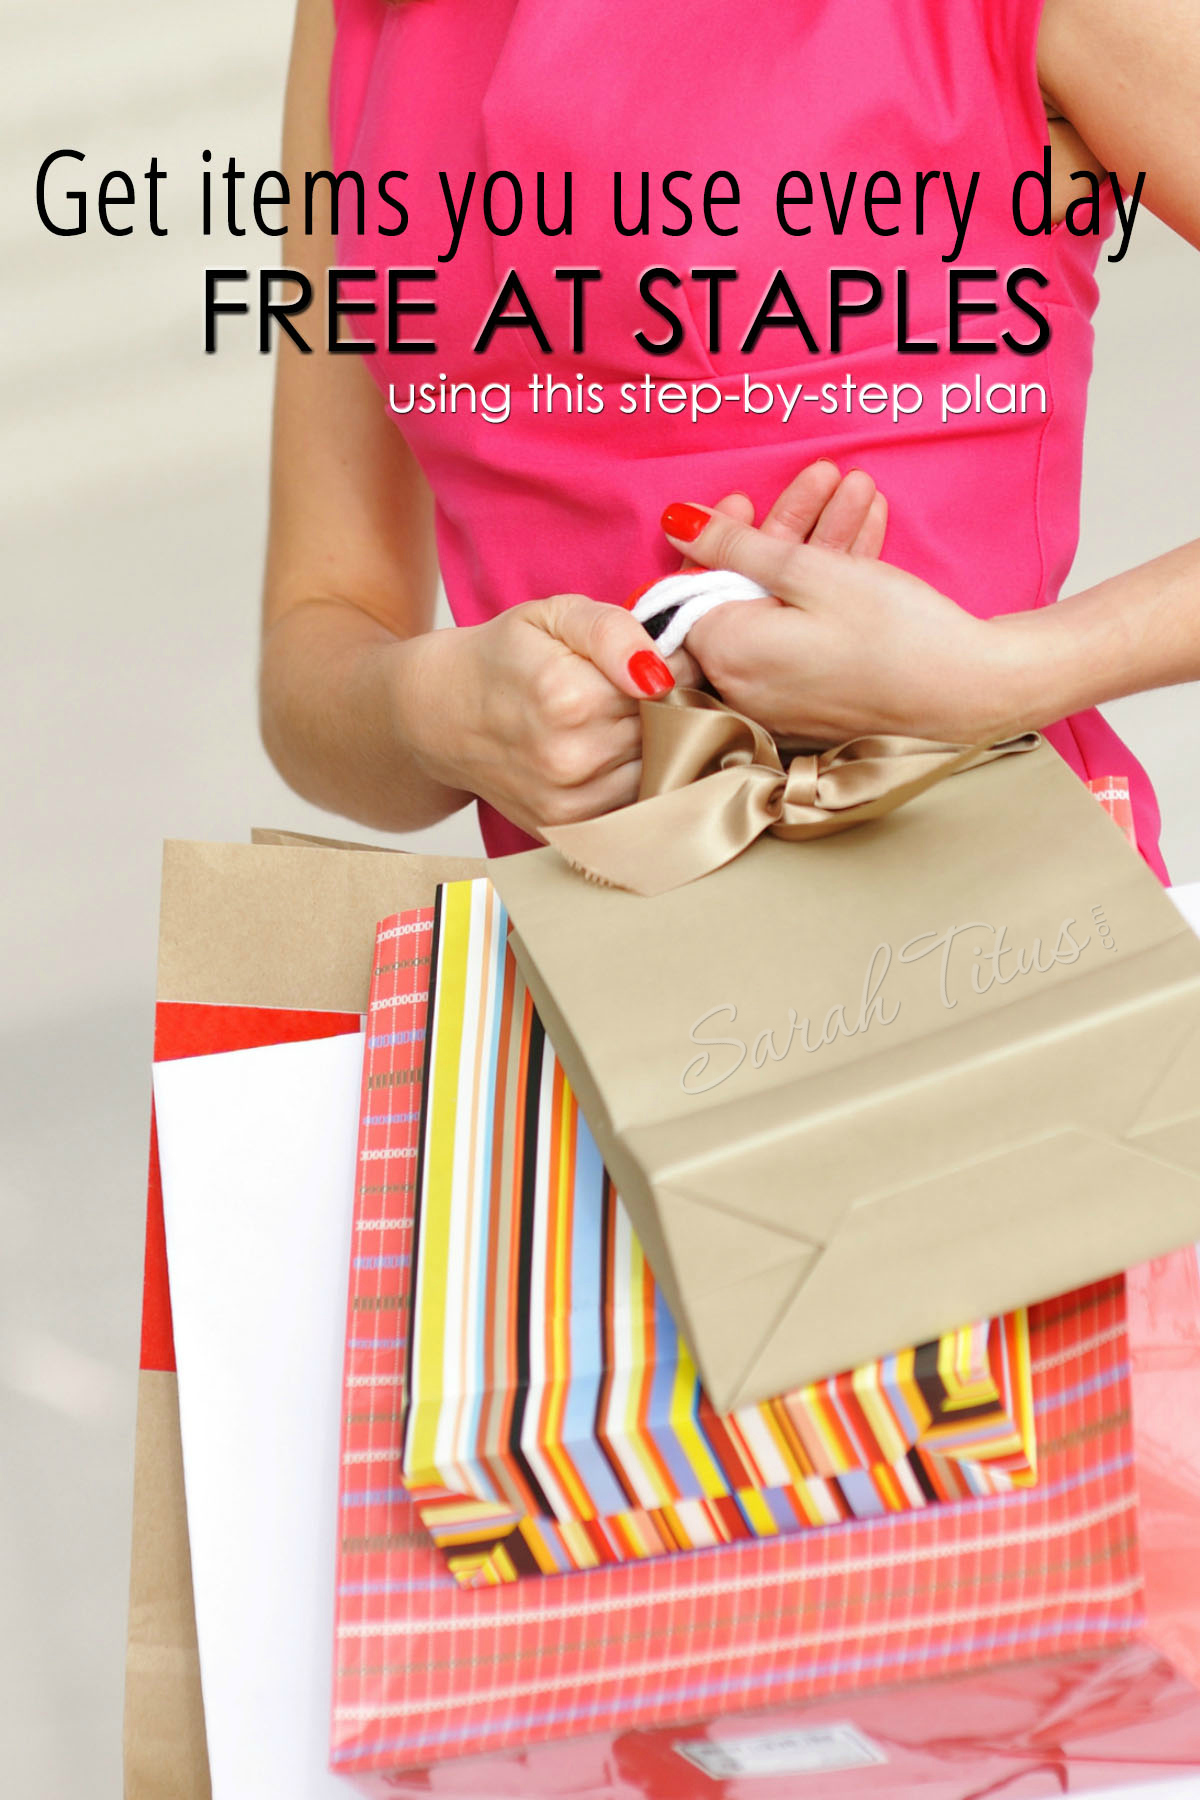 Get Items You Use Everyday for FREE at Staples